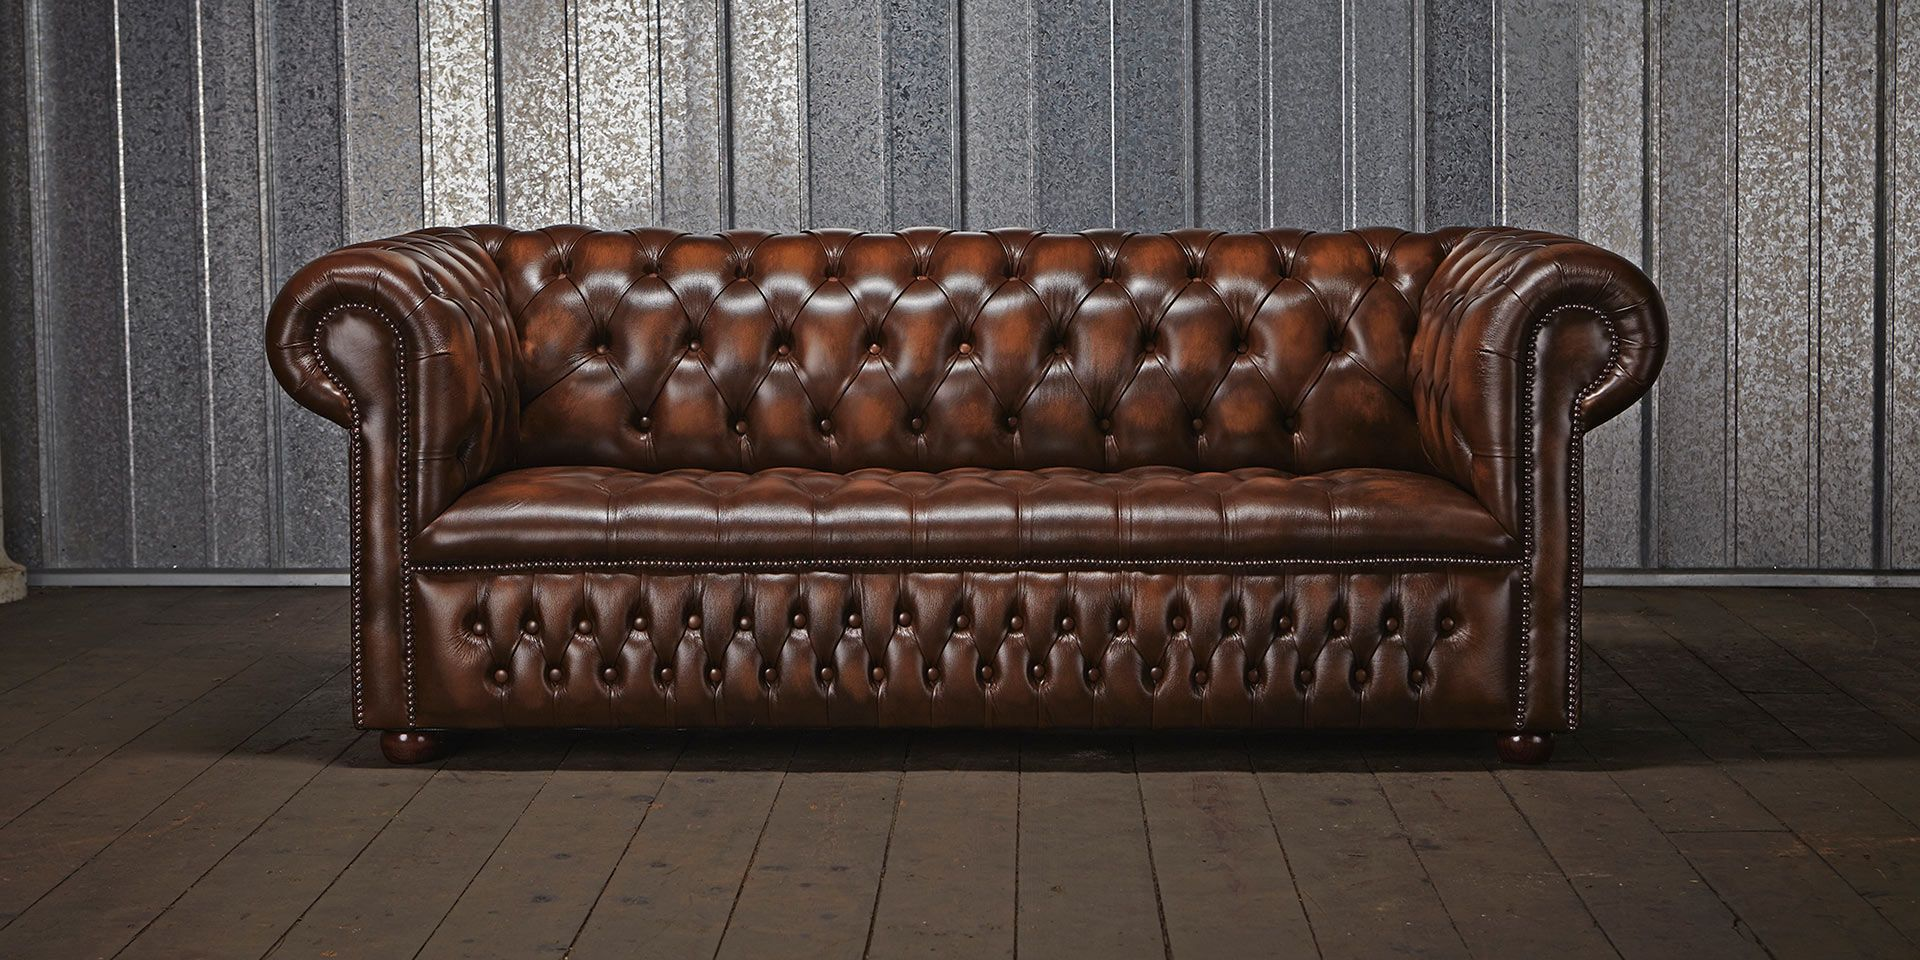 This Image Identifies The Chesterfield Sofa Which Was One Of Most Famous Pieces Furniture Originating From Victorian Era 1837 1901